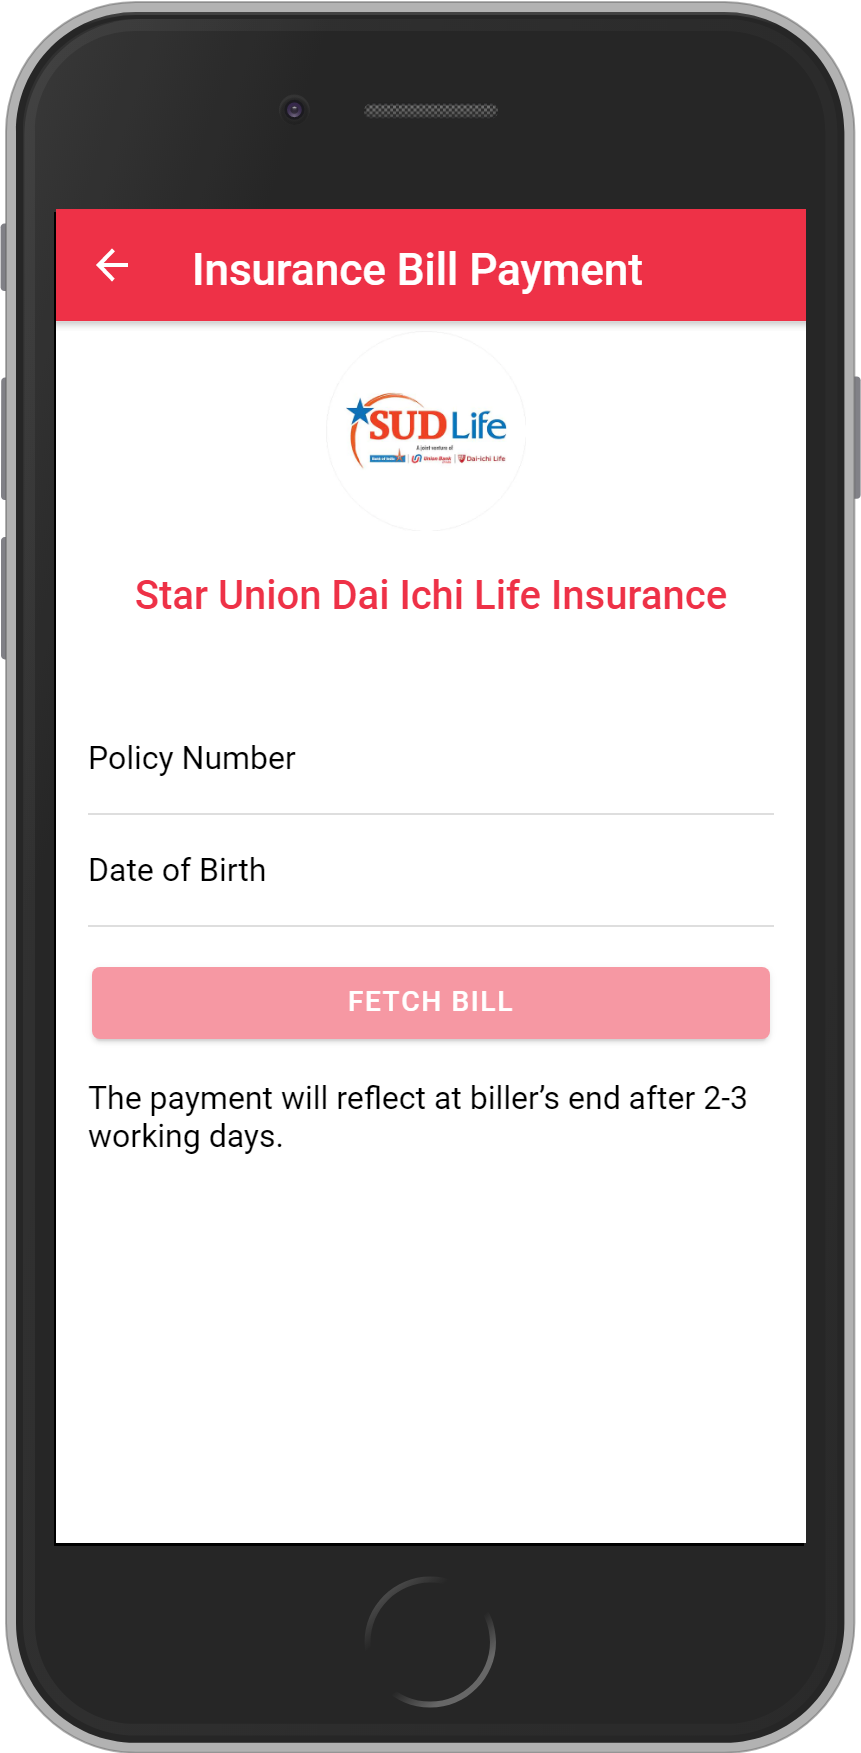 Get UNLIMITED <b>0.10%</b> CASHBACK on Star Union Dai Ichi Life Insurance Payment.